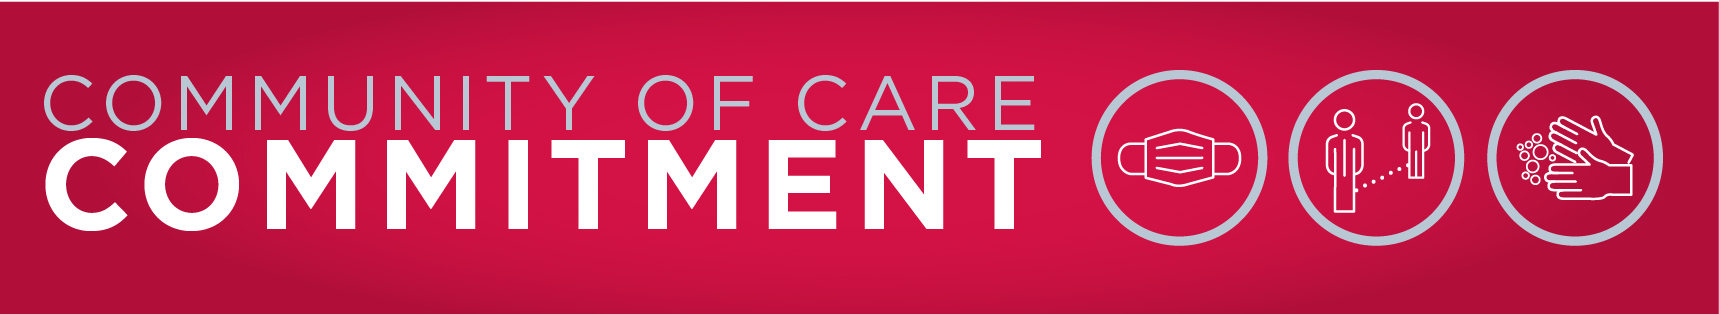 Community of Care Header_825x150